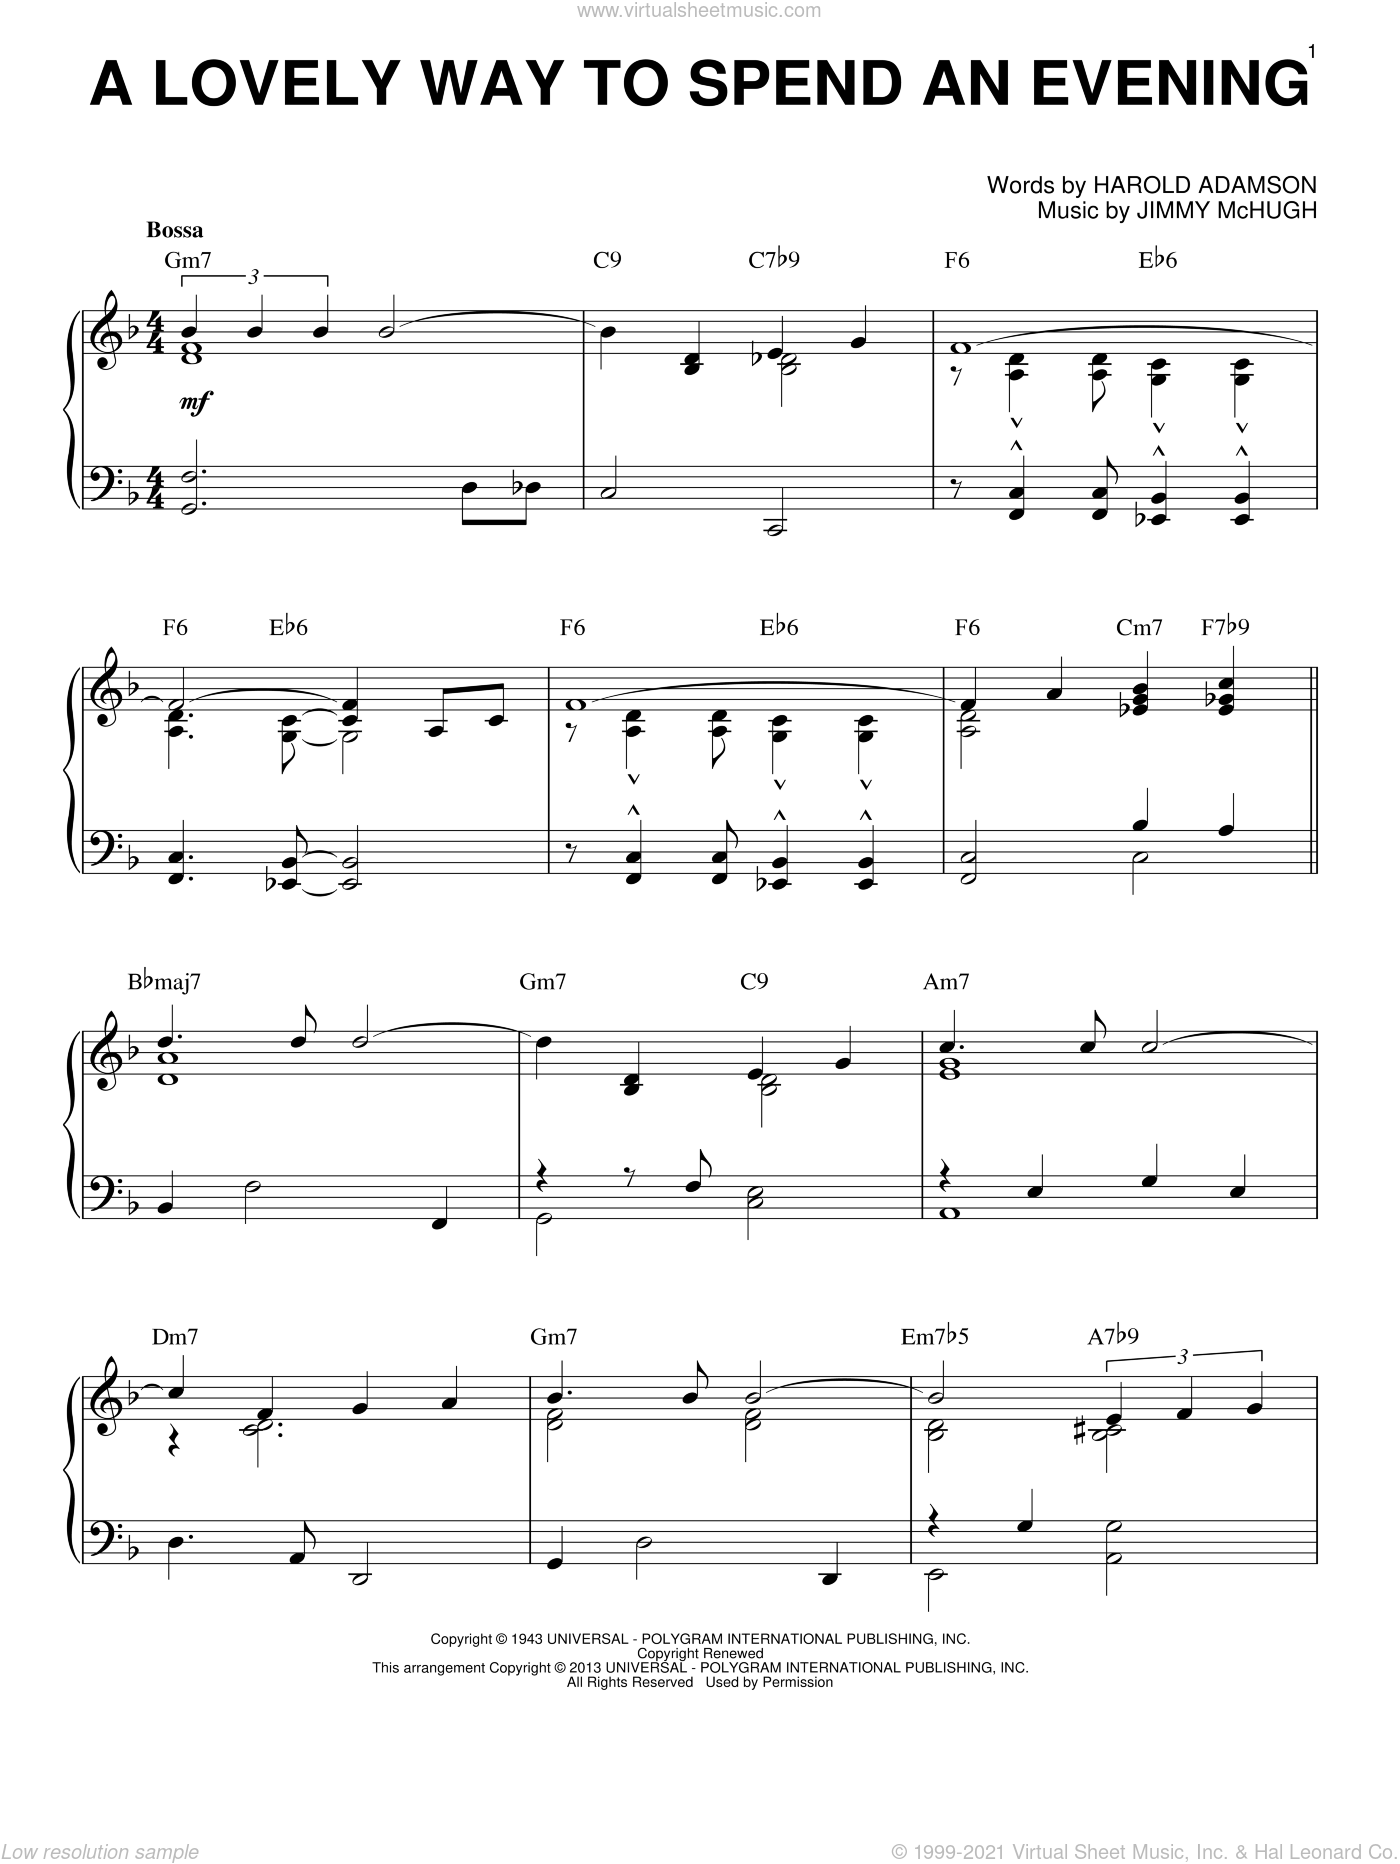 A Lovely Way To Spend An Evening sheet music for piano solo by Frank Sinatra